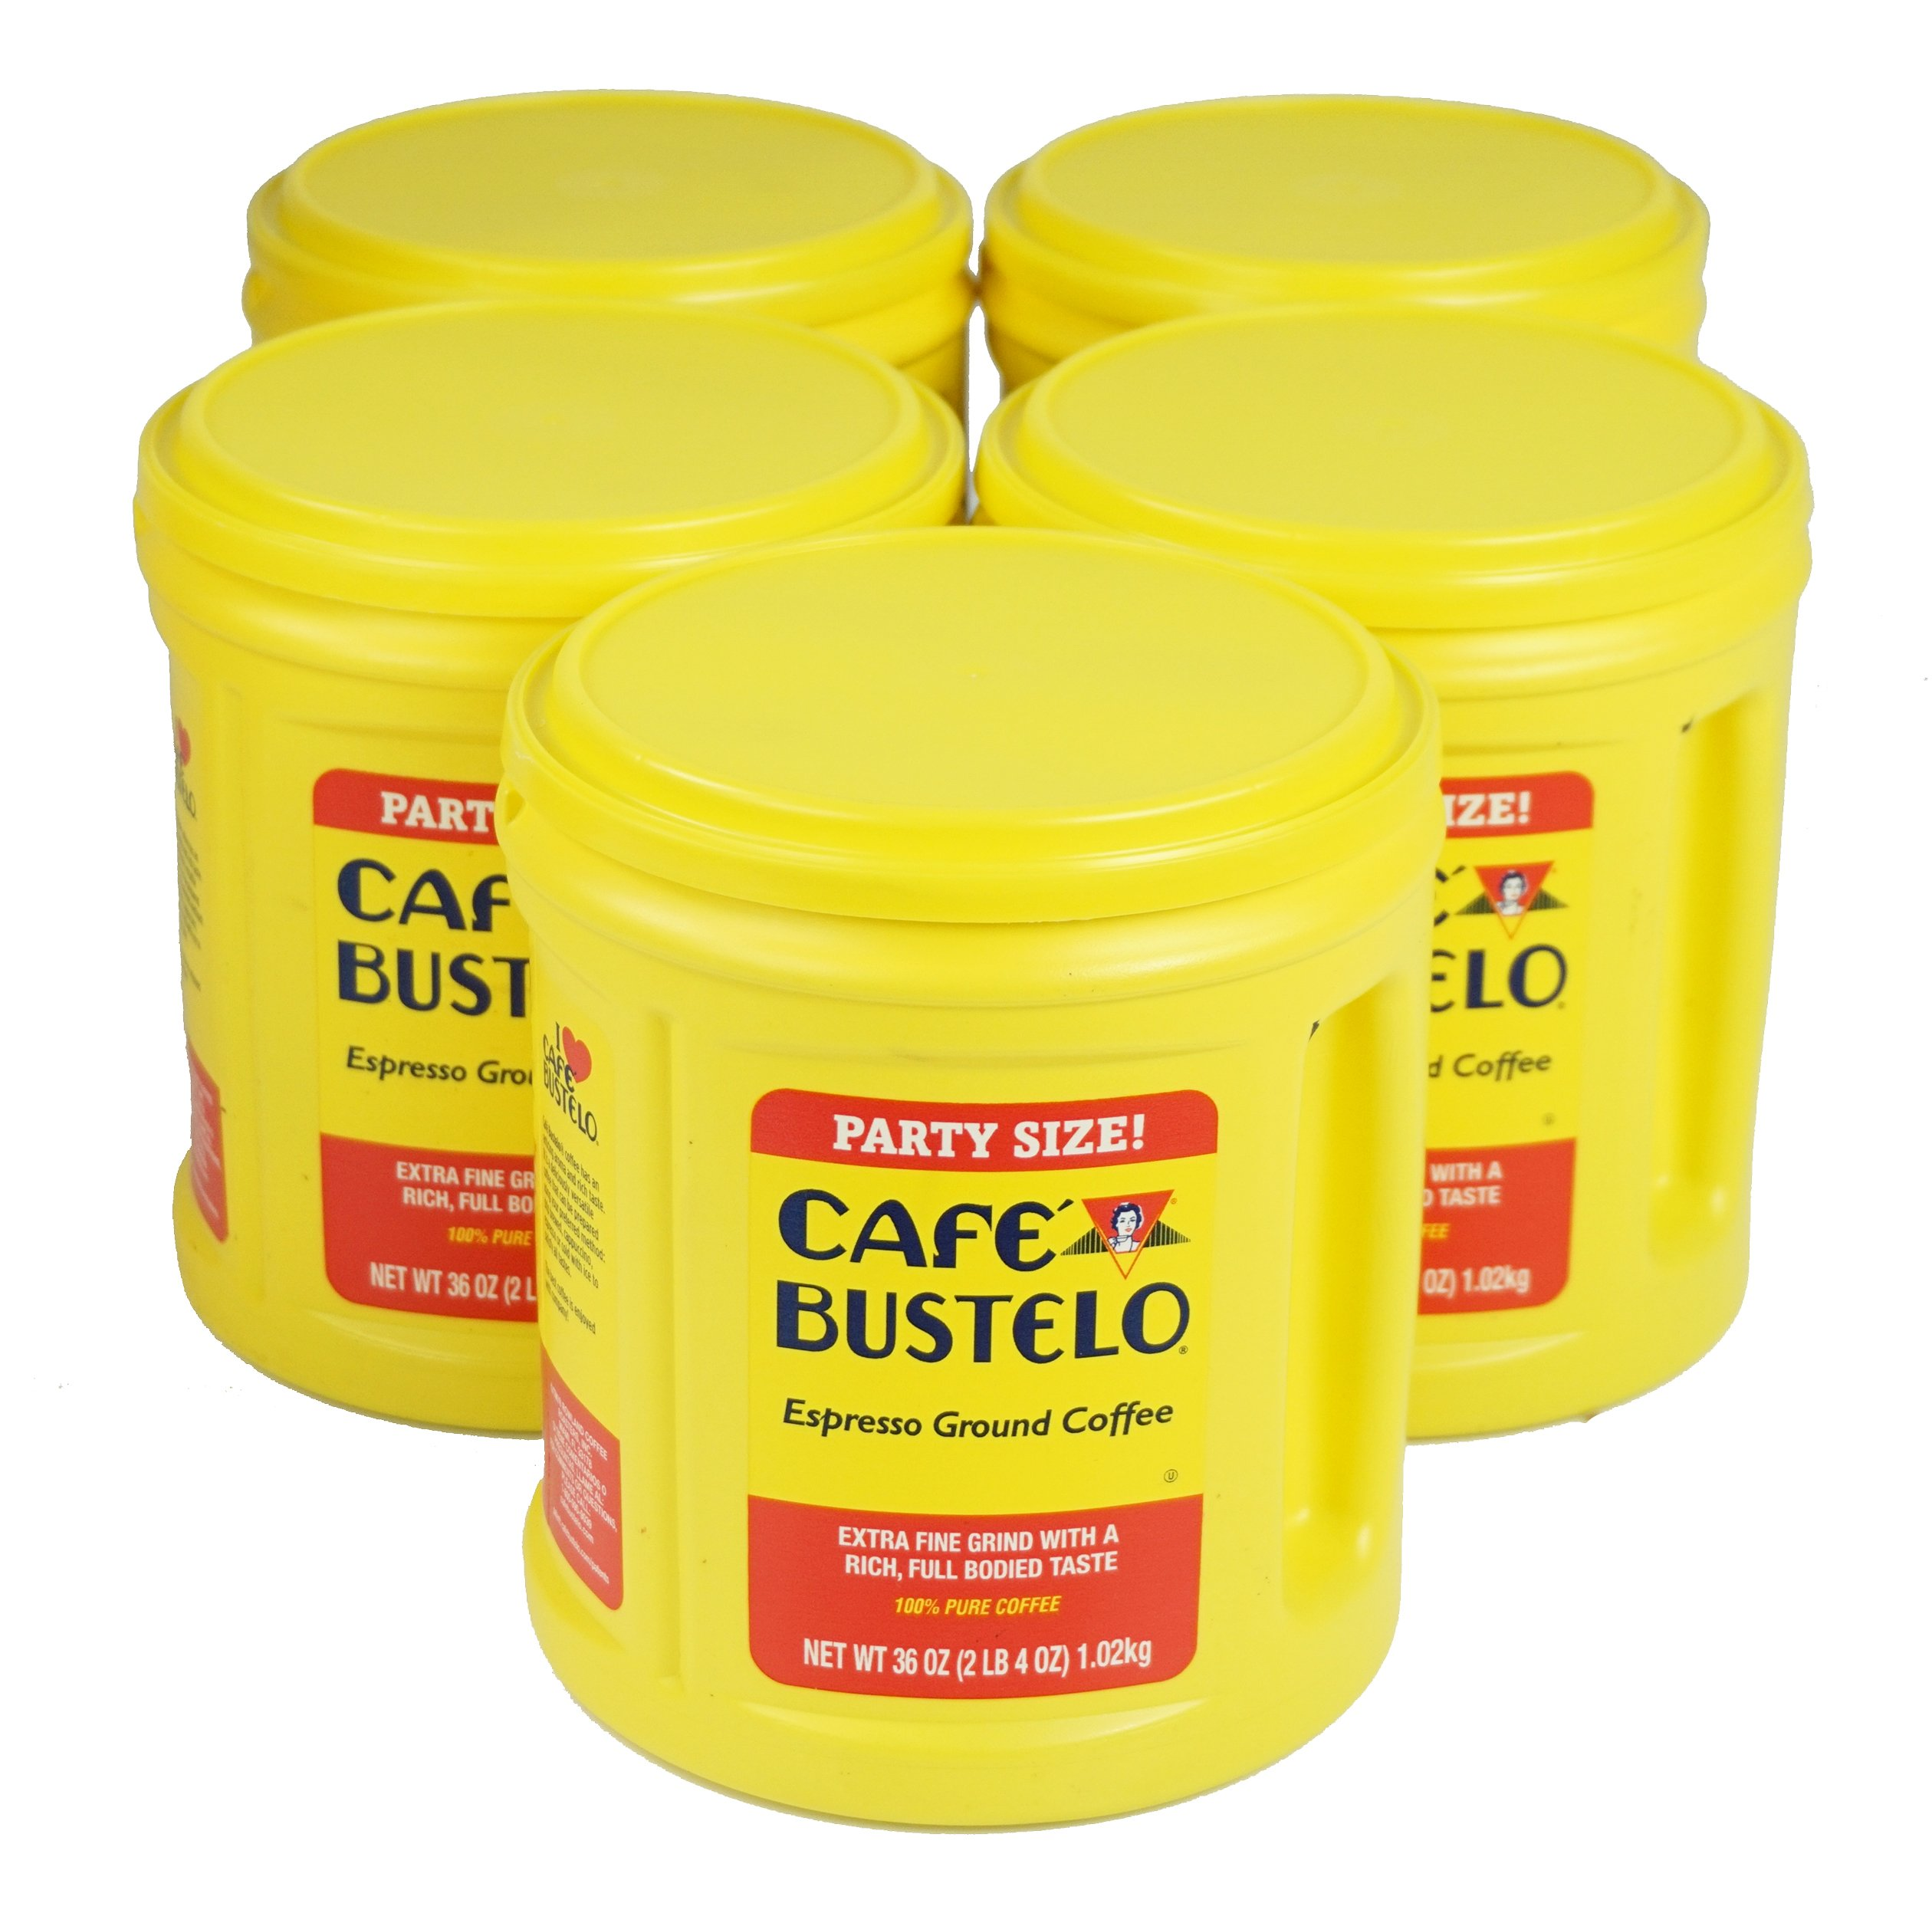 Cafe Bustelo Coffee Espresso, 36 Ounce, 5 Count (Pack of 5)